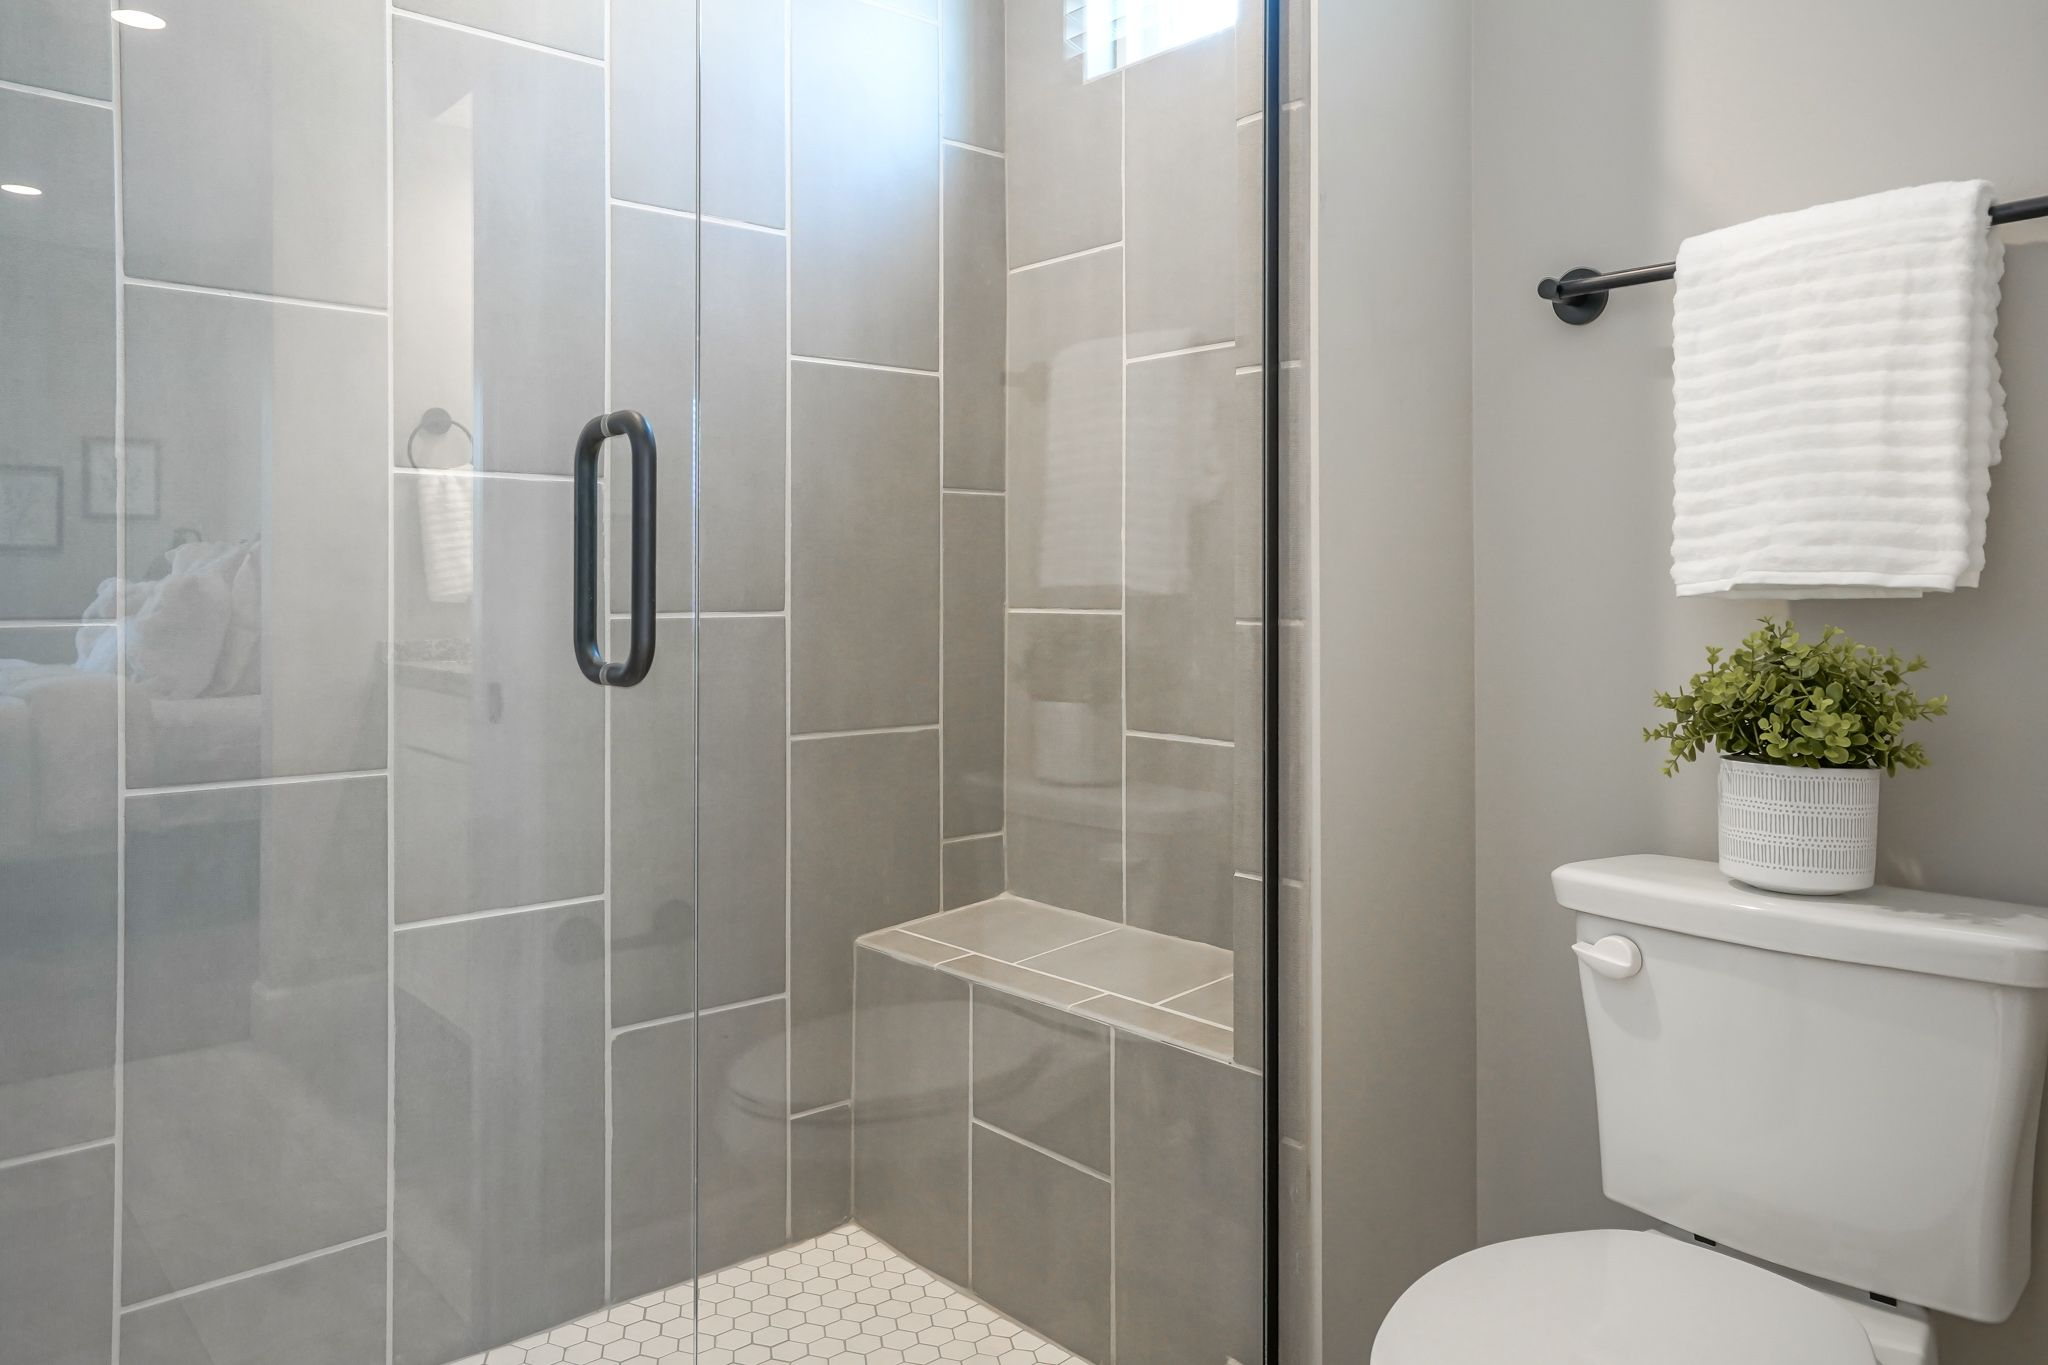 Bathroom featured in The Stout By Abrazo Homes in Albuquerque, NM